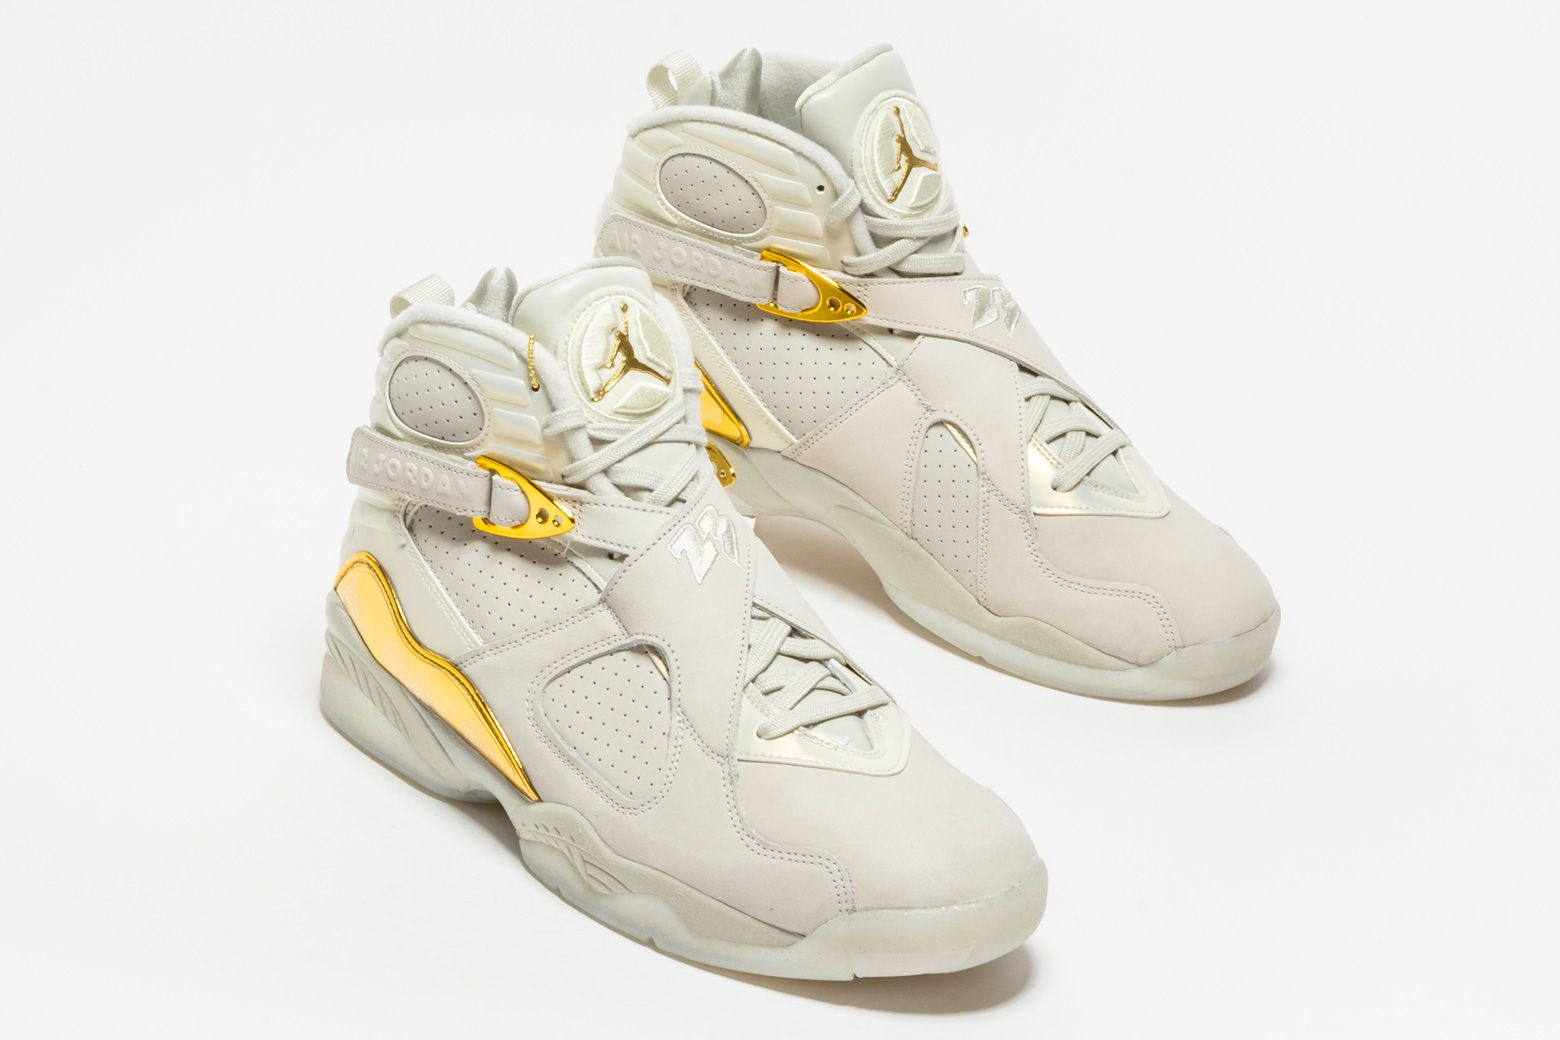 sale retailer c405d 0ca17 ... wholesale peep the shine on the metallic gold accents throughout the air  jordan 8 retro champagne